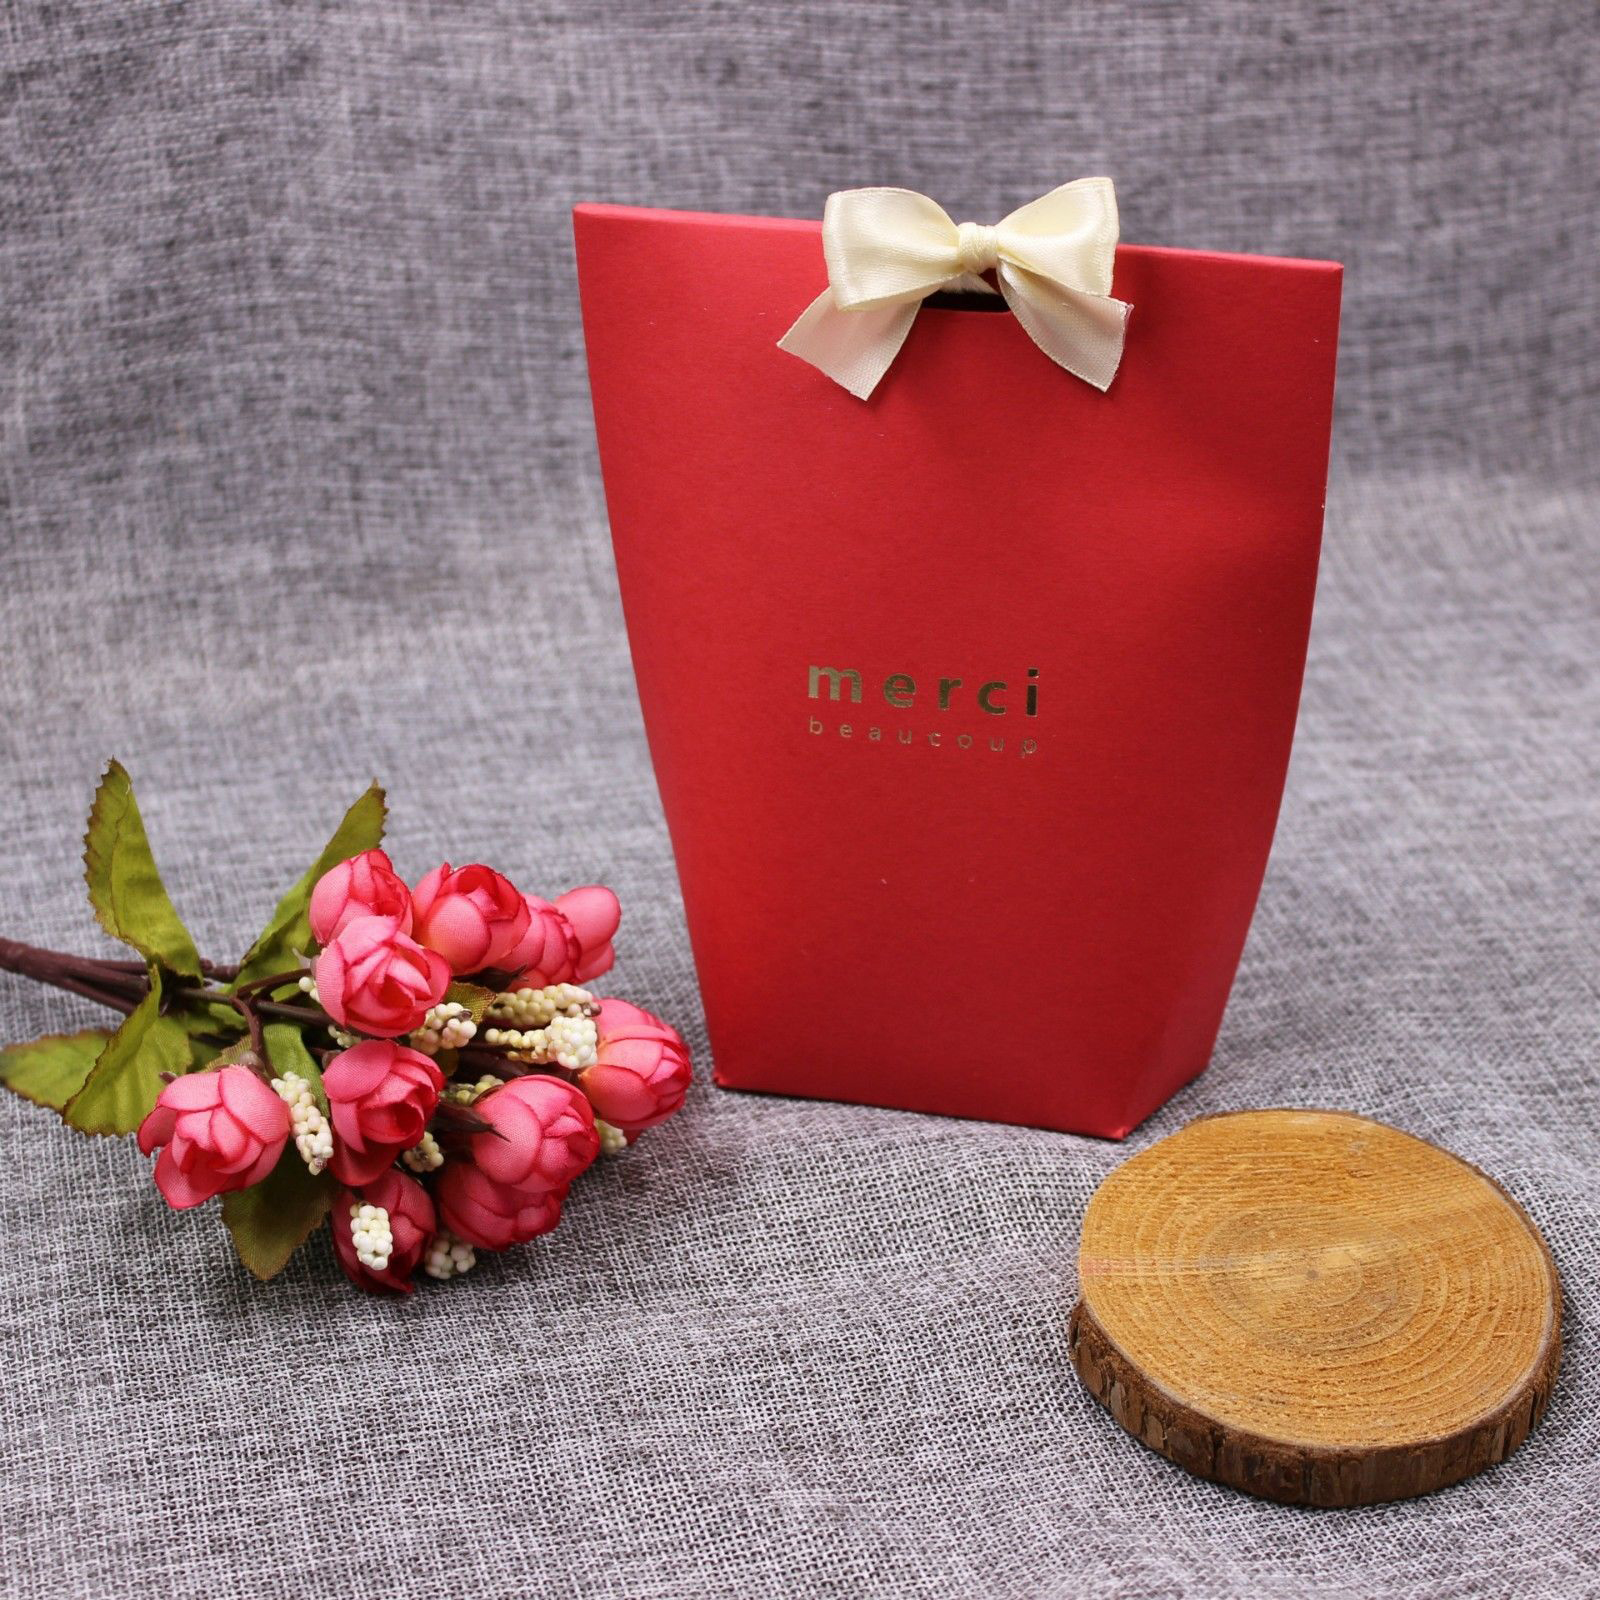 50X Merci Beaucoup Elegant Party Paper Wedding Favour Gift Sweets